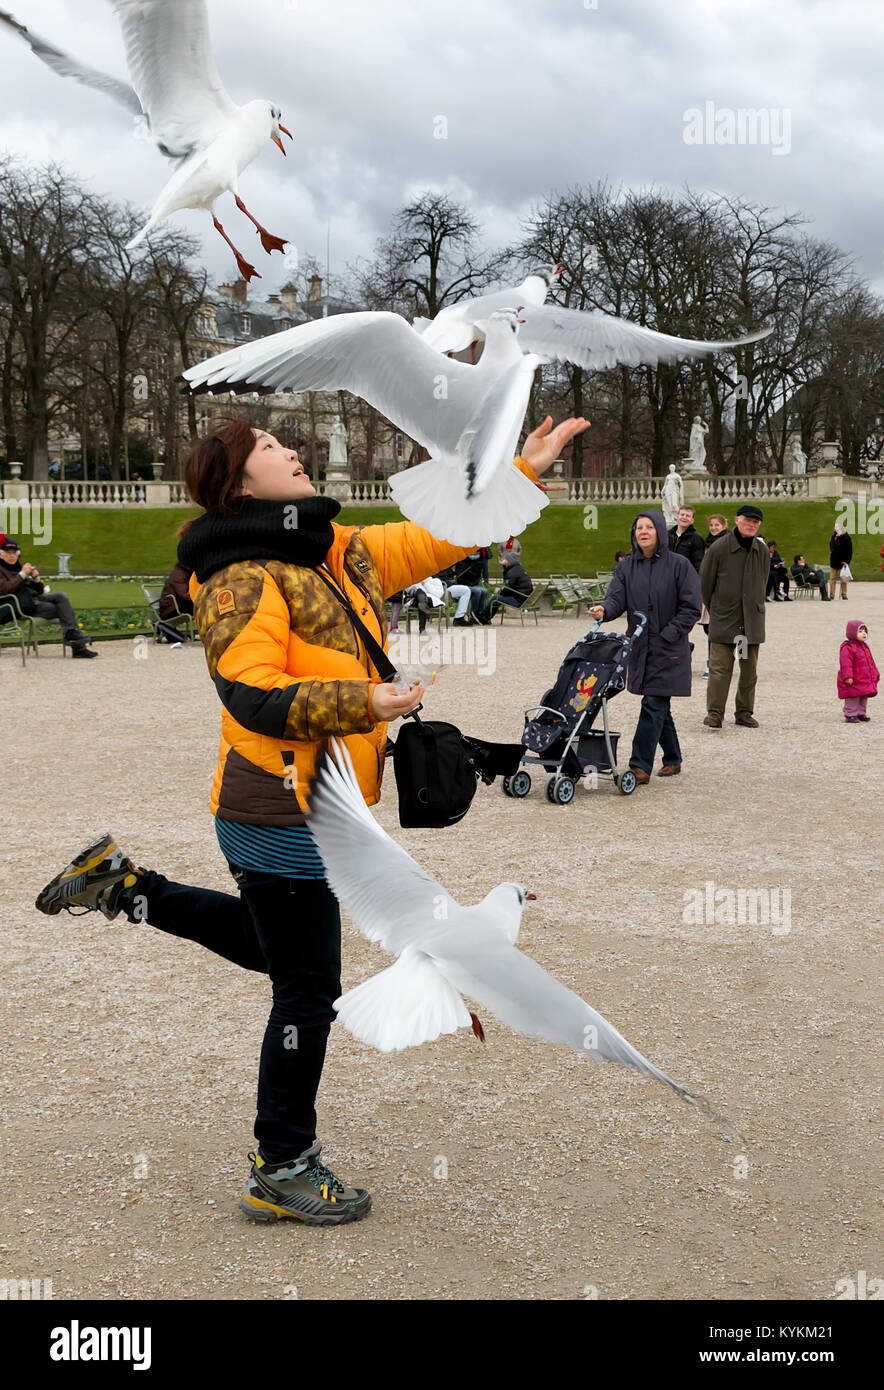 PARIS-JAN 4, 2014:An unidentified woman tosses food up in the air for birds to catch at the Luxembourg Gardens, Stock Photo